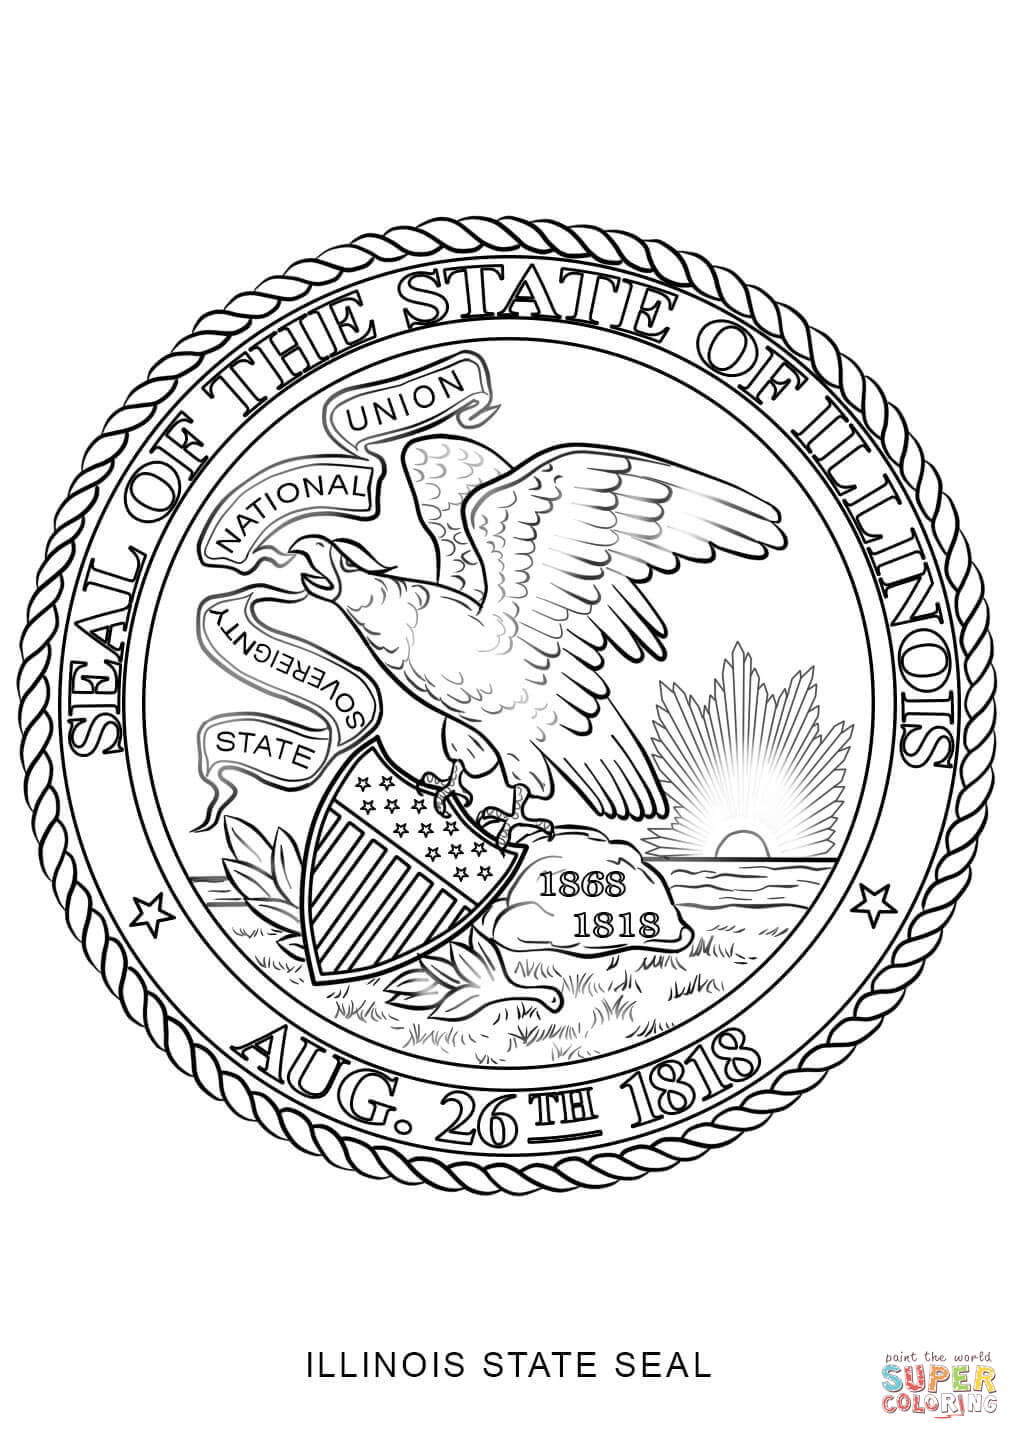 Wisconsinstate bird coloring page az coloring pages for Arizona state seal coloring page